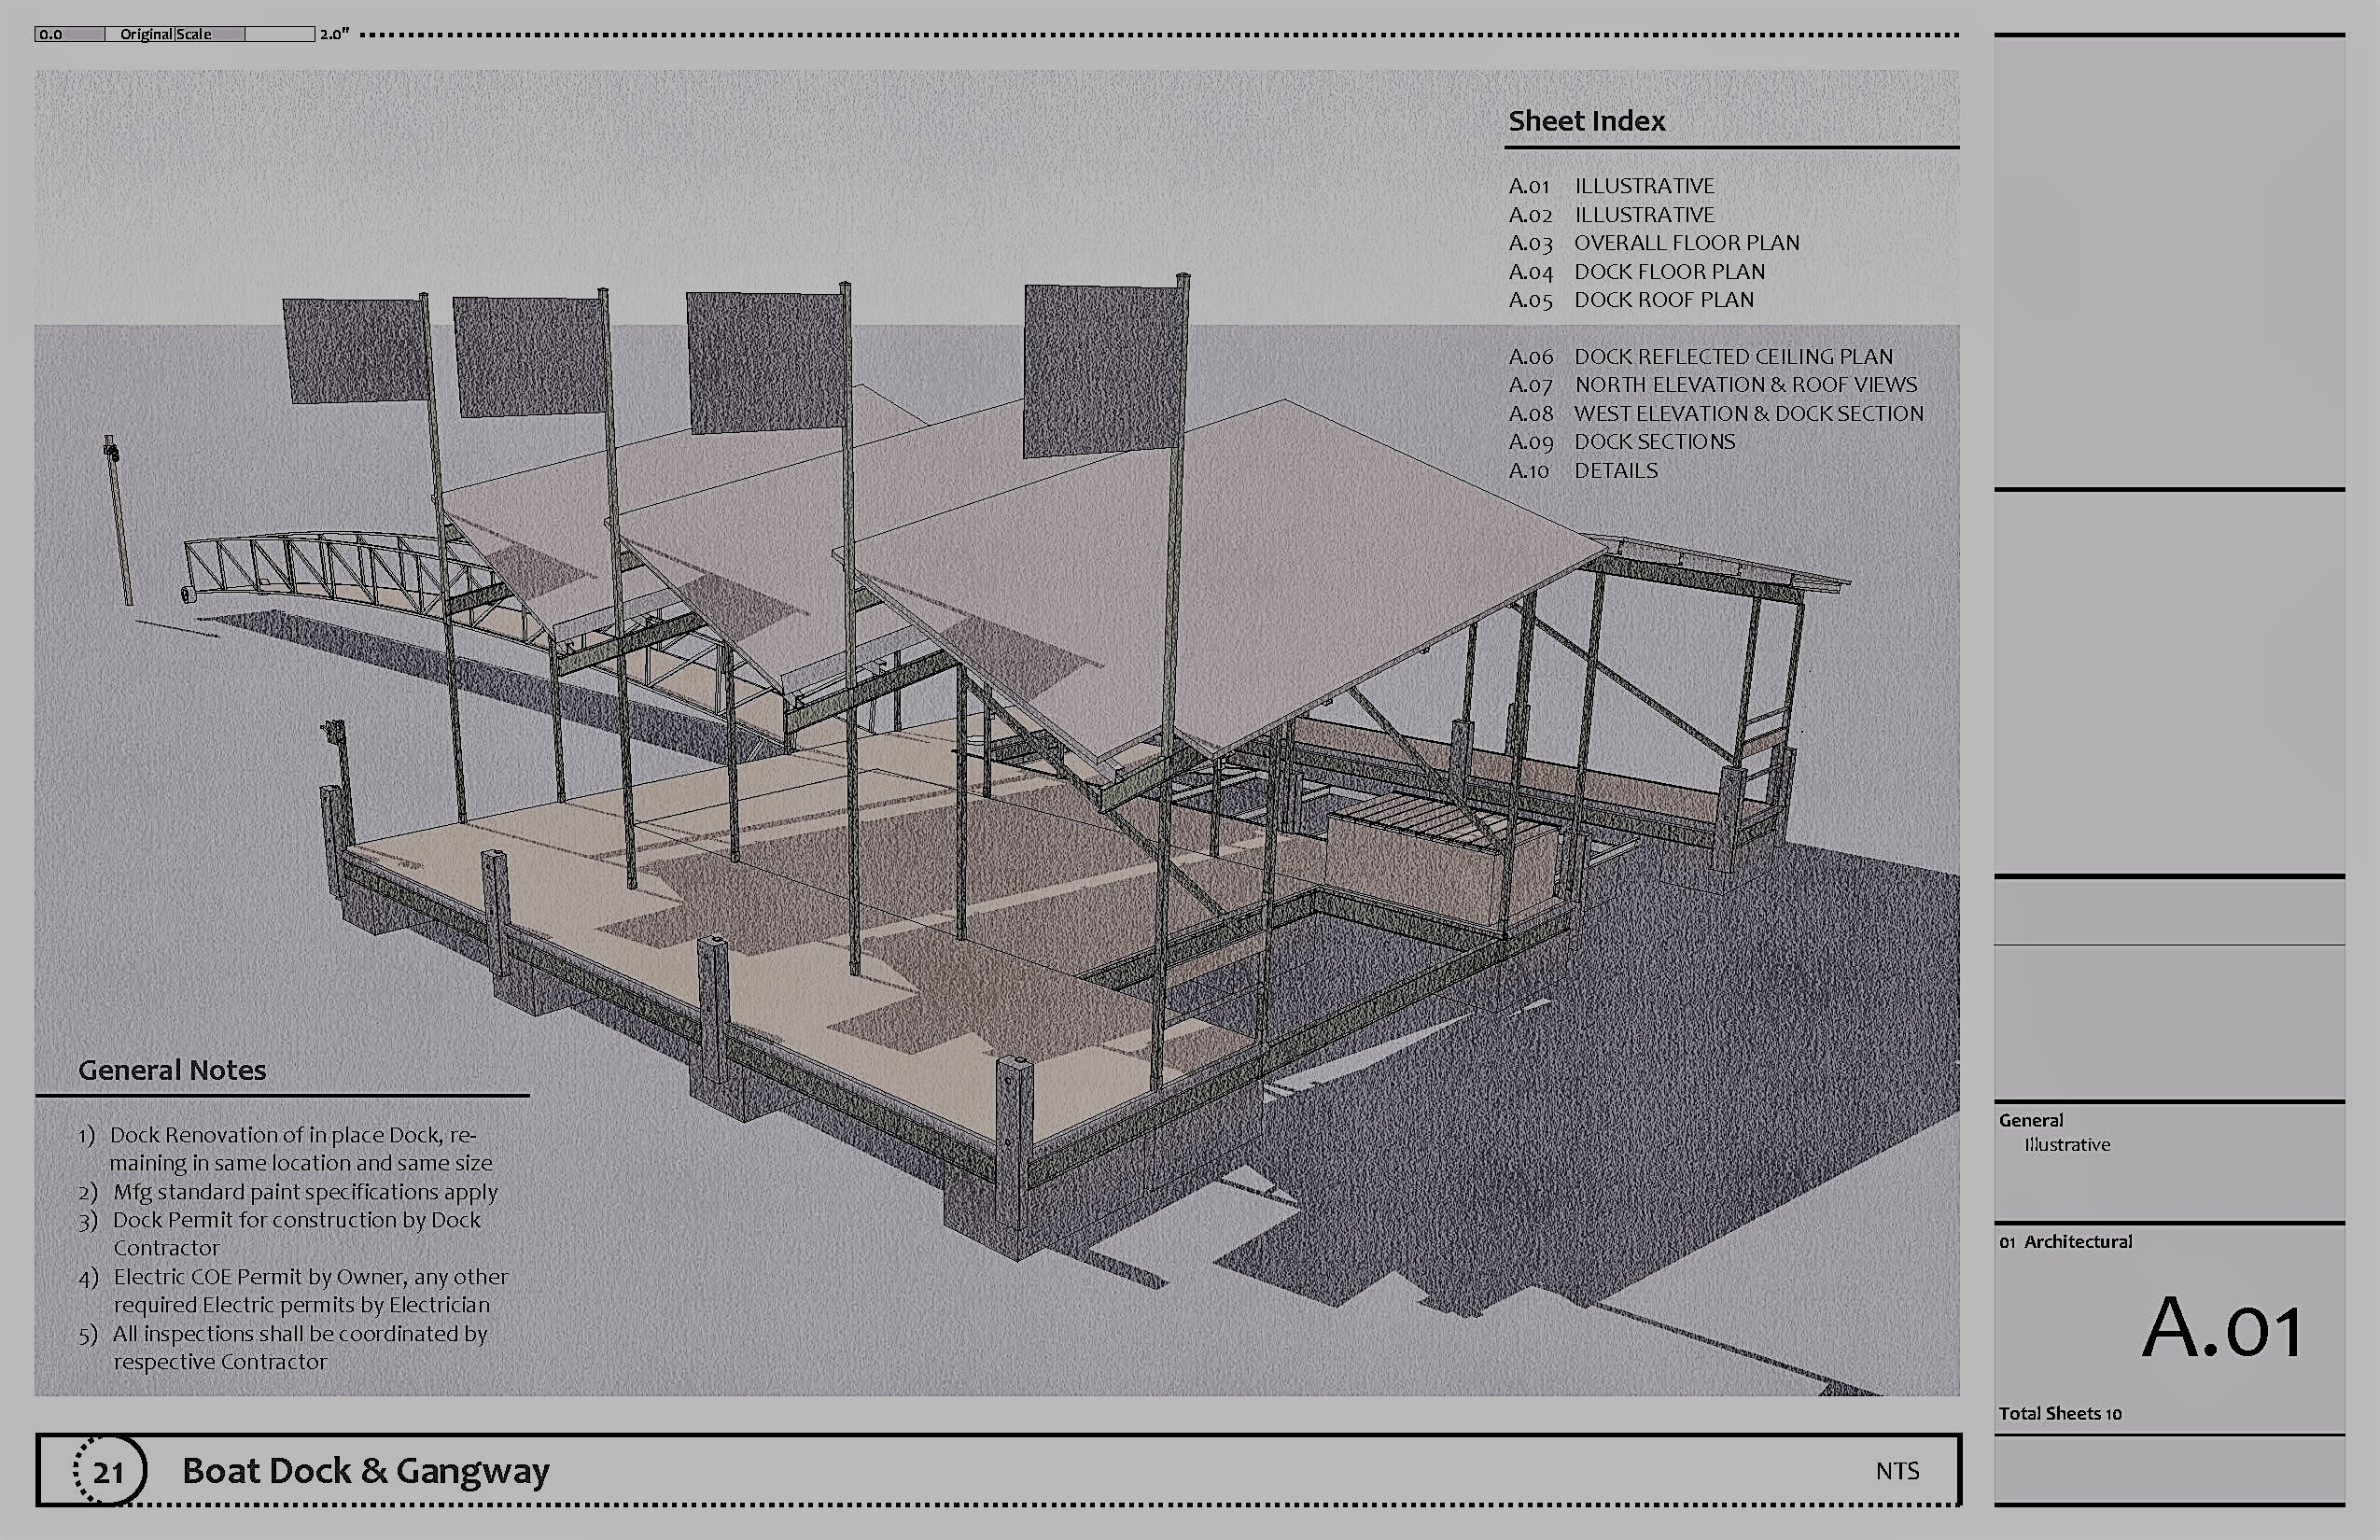 Construction Drawings - Boat Dock - Gallery - SketchUp Community